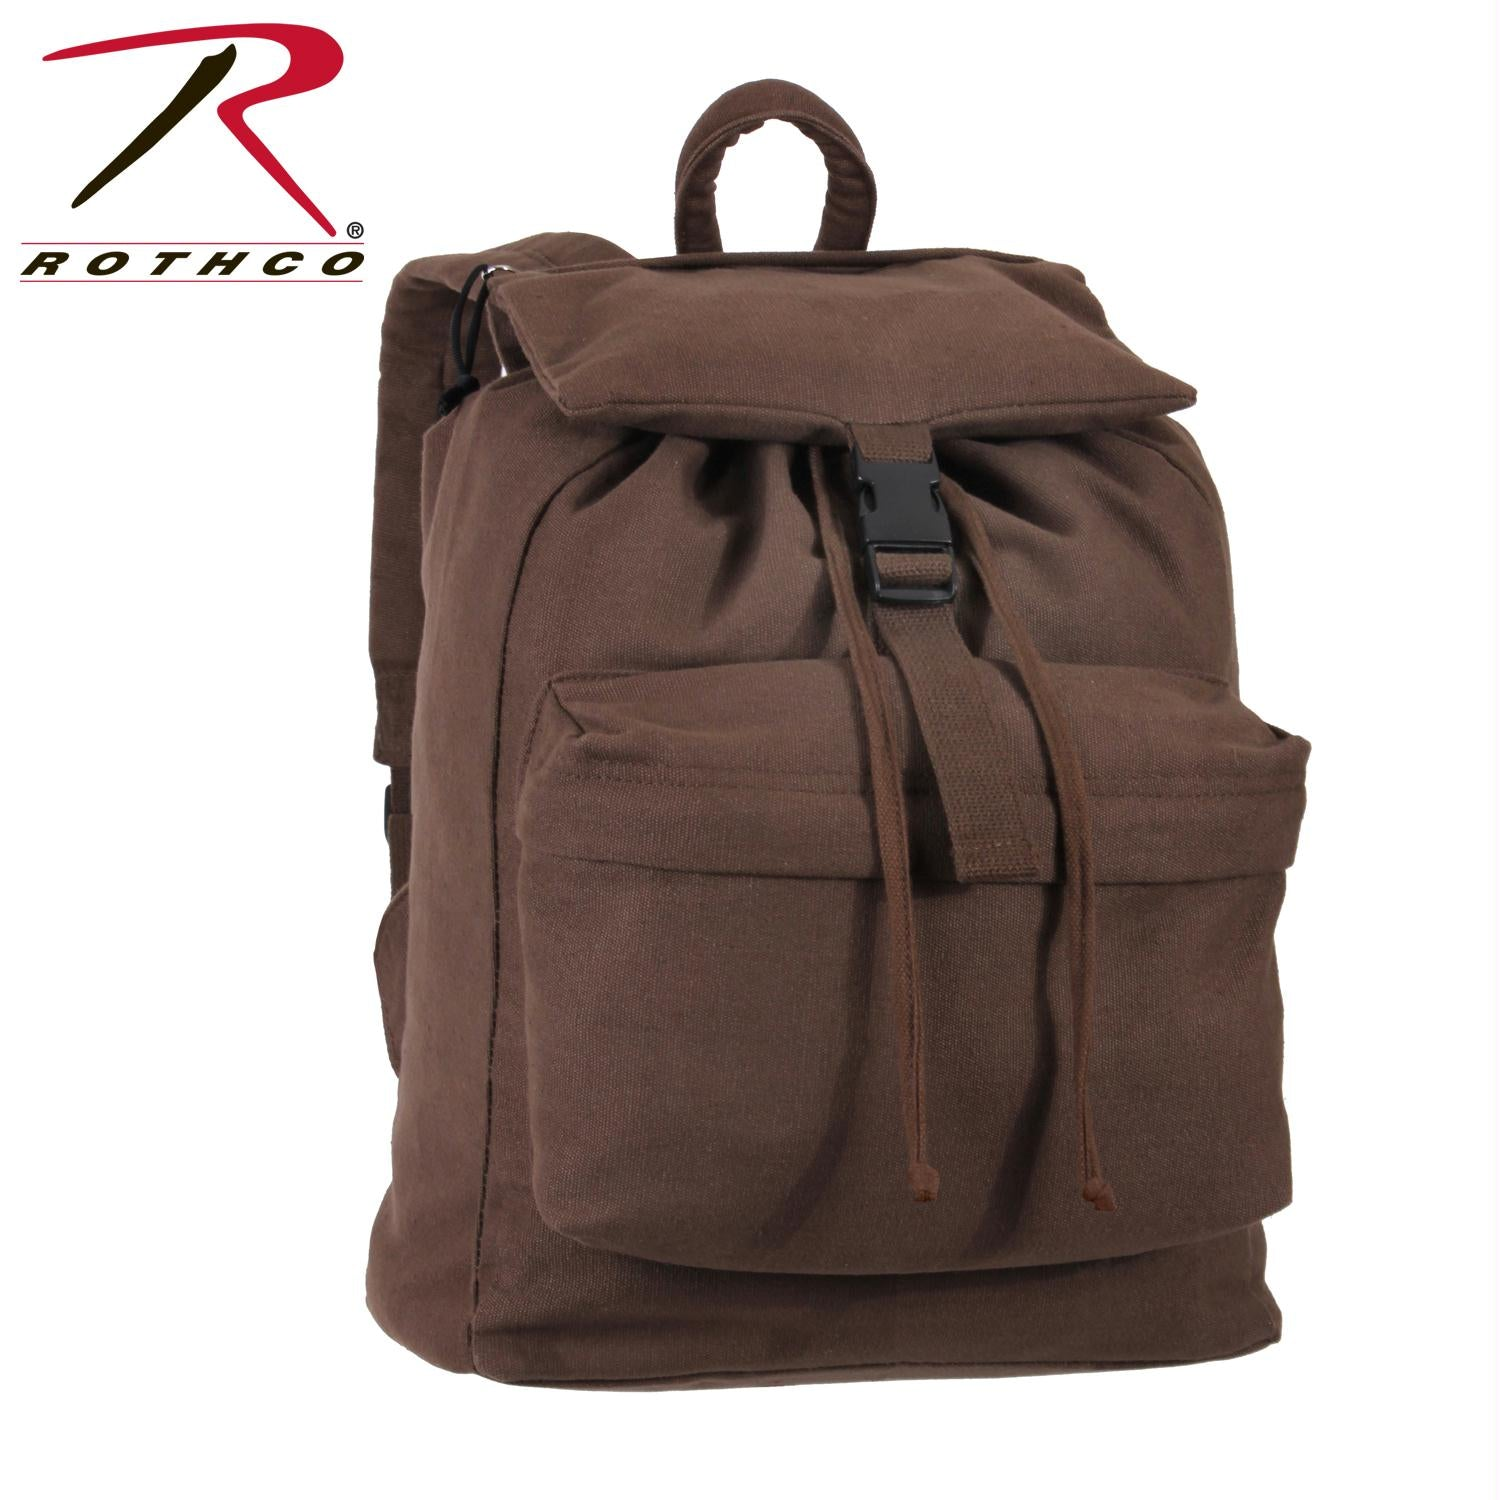 Rothco Canvas Daypack - Earth Brown